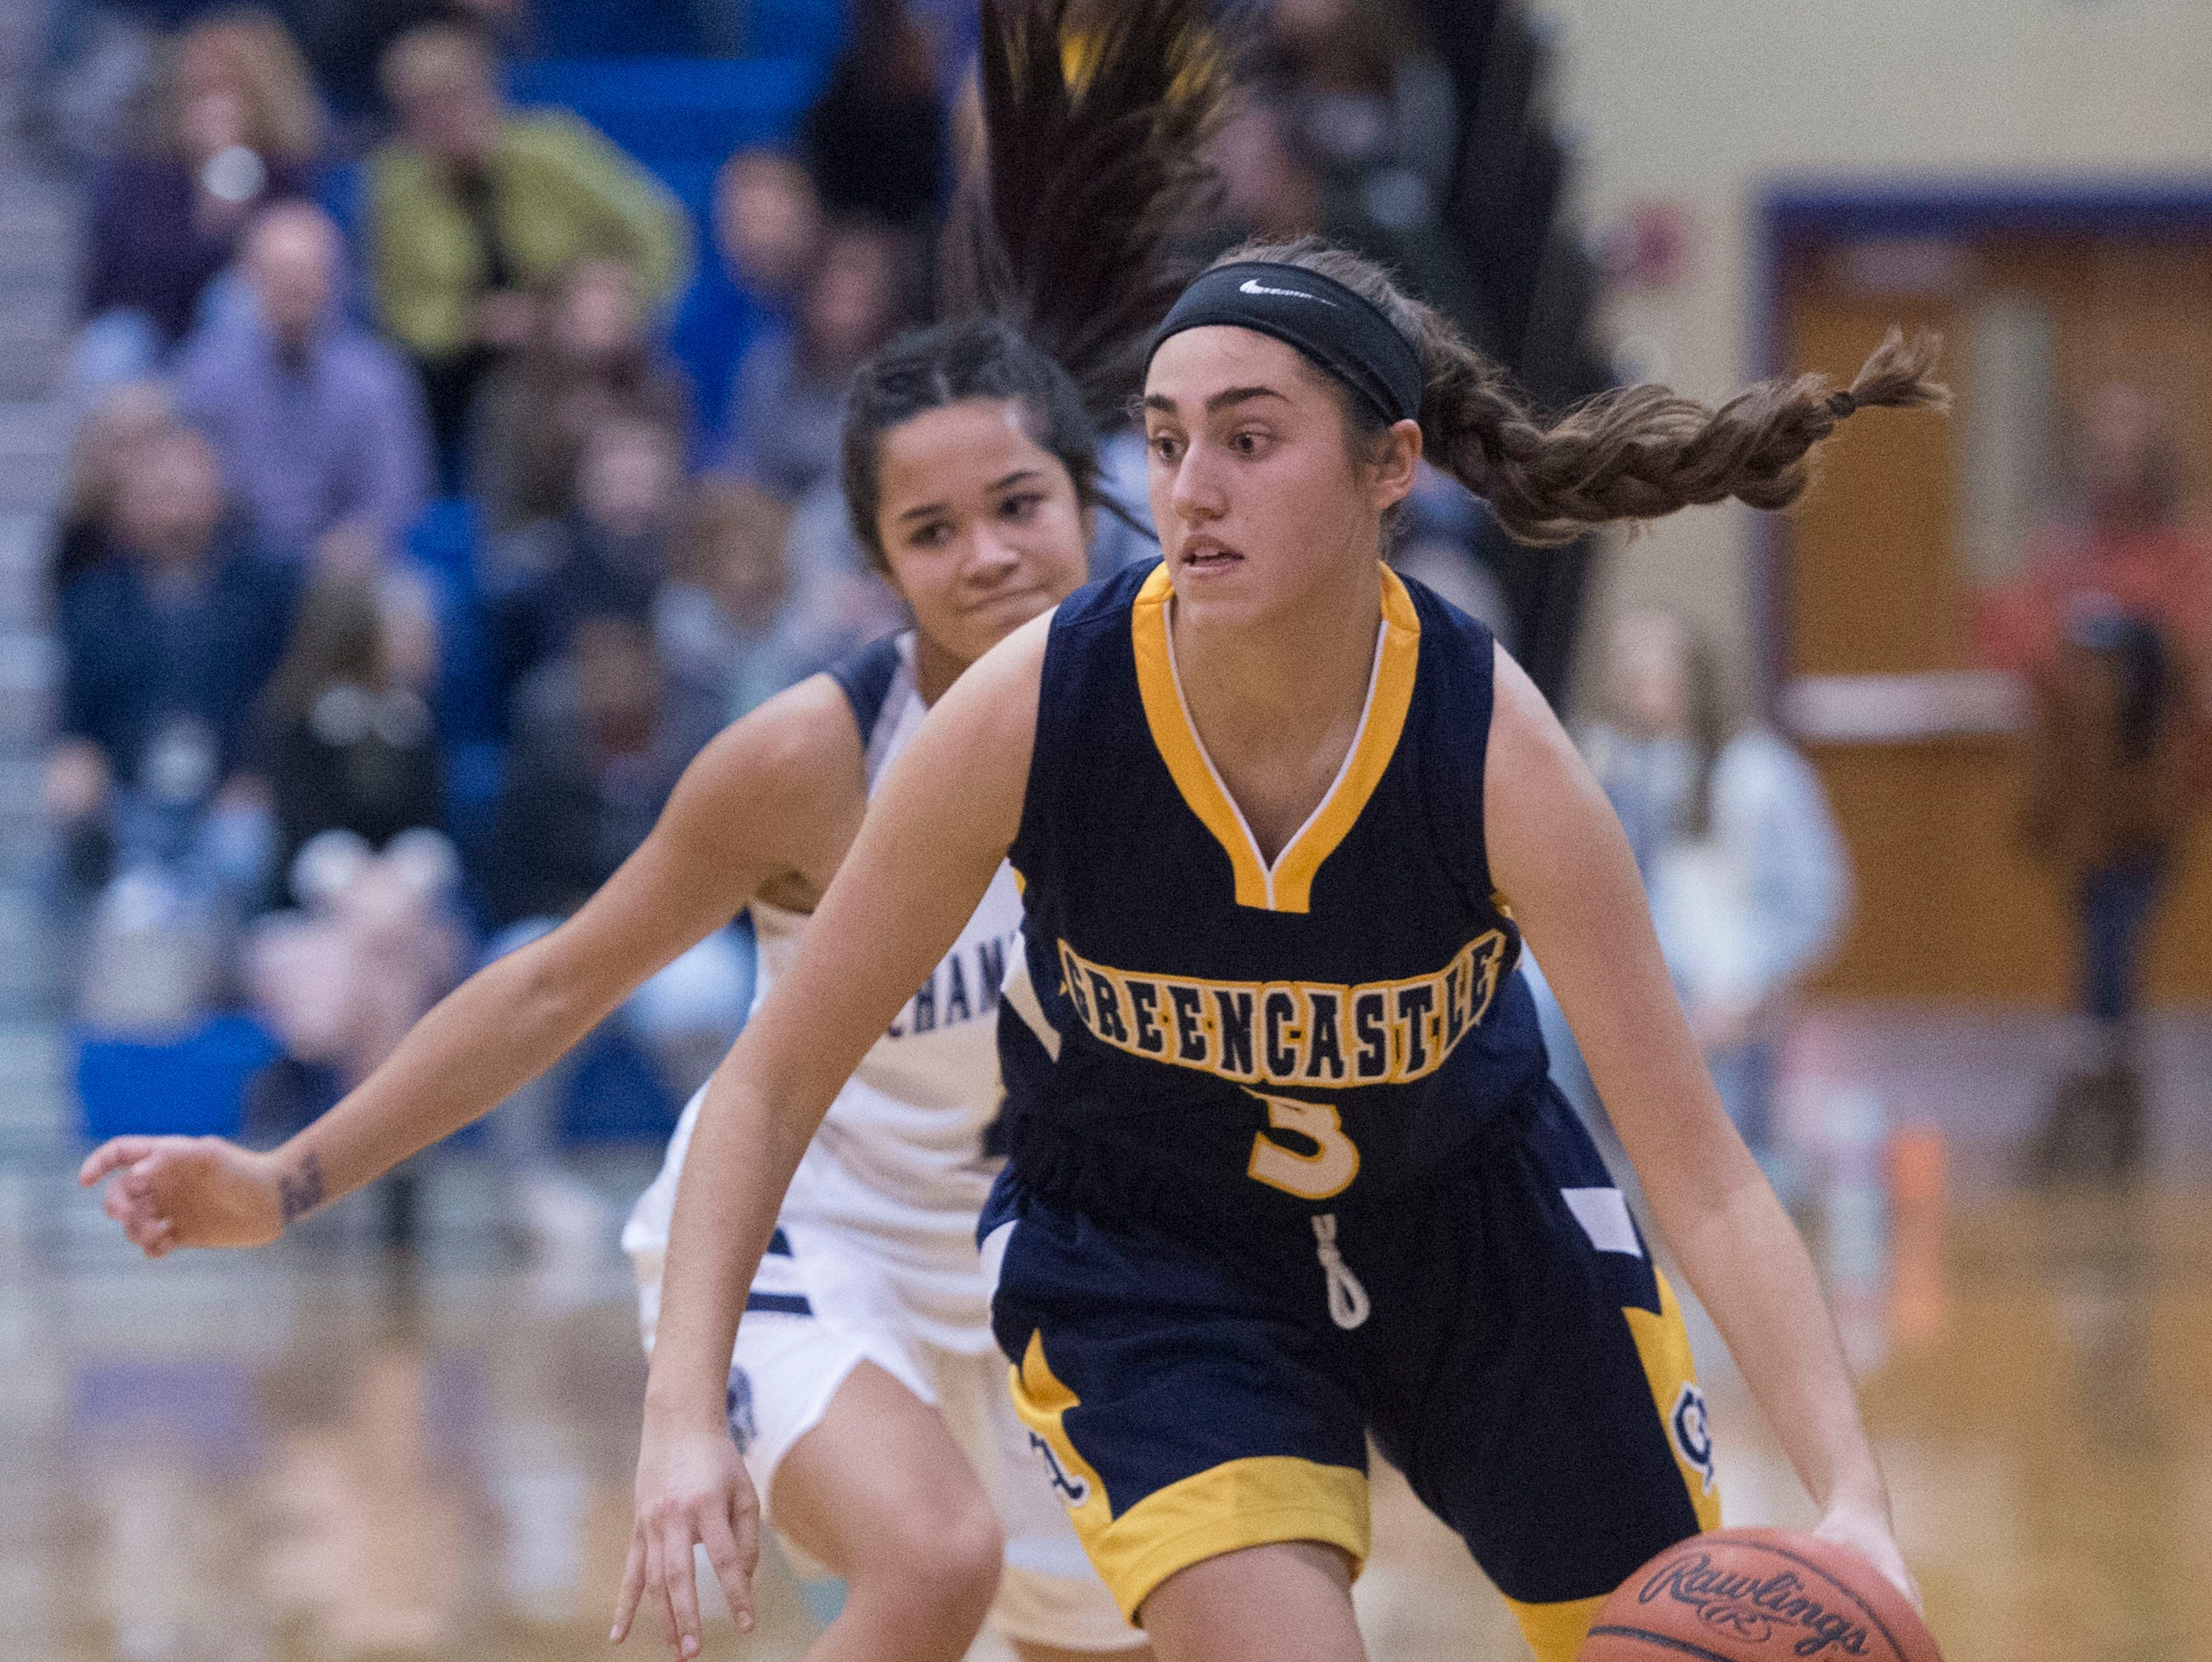 Greencastle's McKenna Rakaczewski (3) dribbles in front of Chambersburg's Erin Patillo. Greencastle defeated Chambersburg 26-22 during the finals at Franklin County Tip-Off Tournament, Saturday, Dec. 8, 2018.